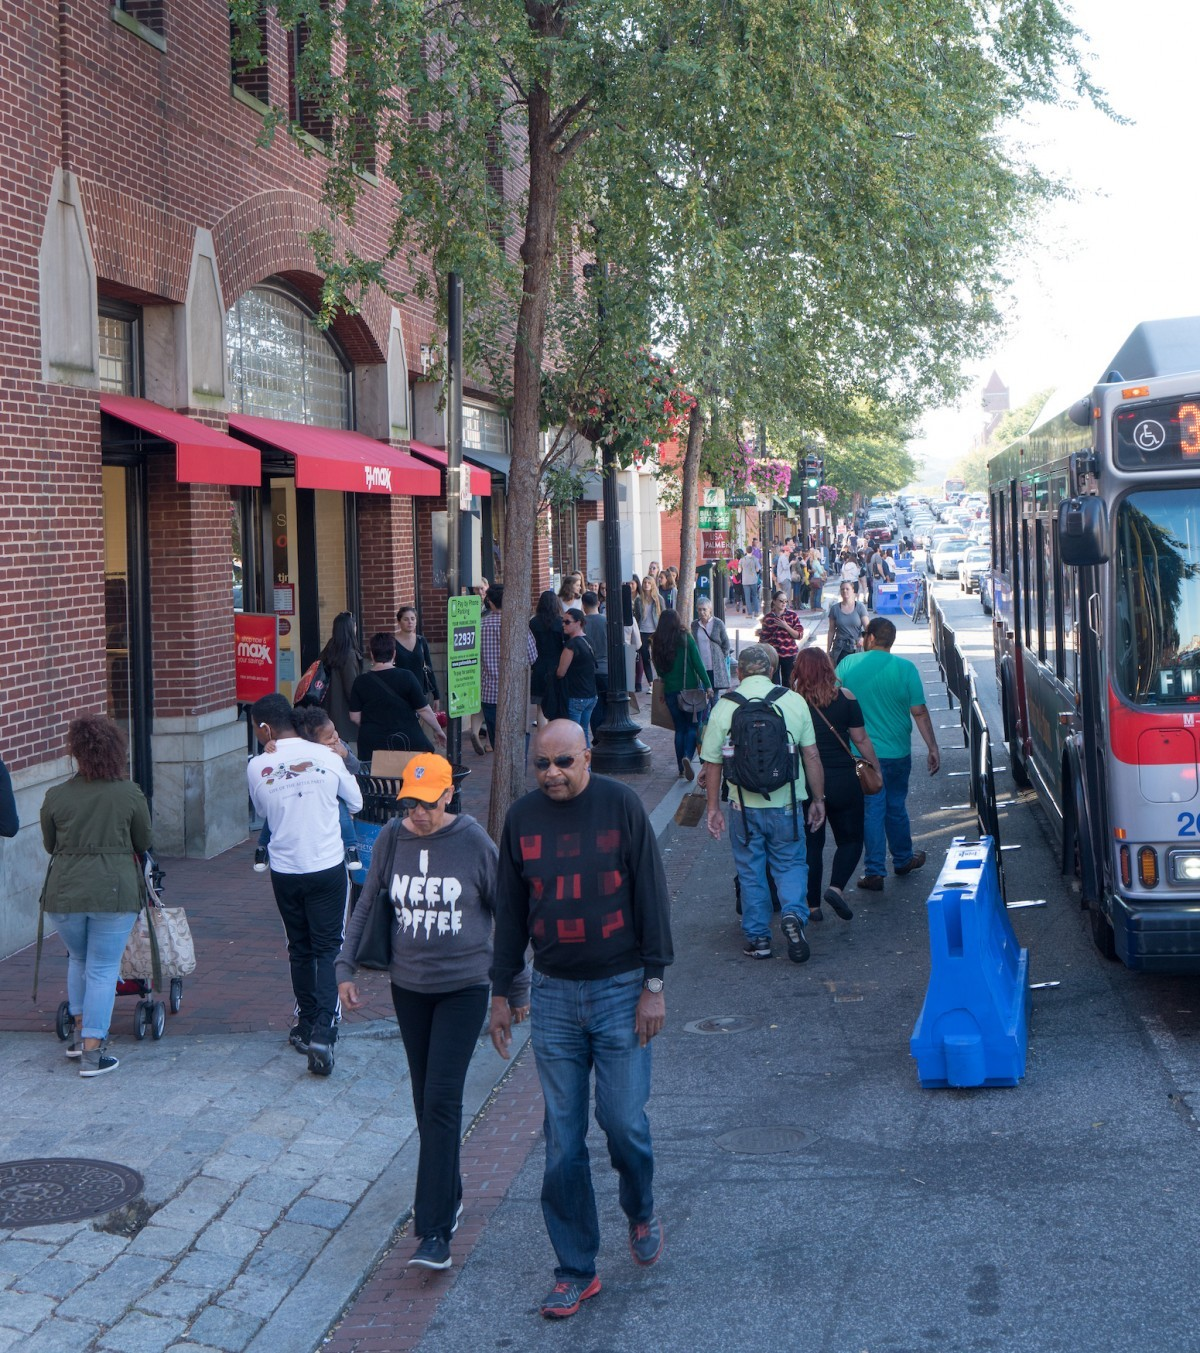 In Georgetown, a crash course in how to turn parking spaces